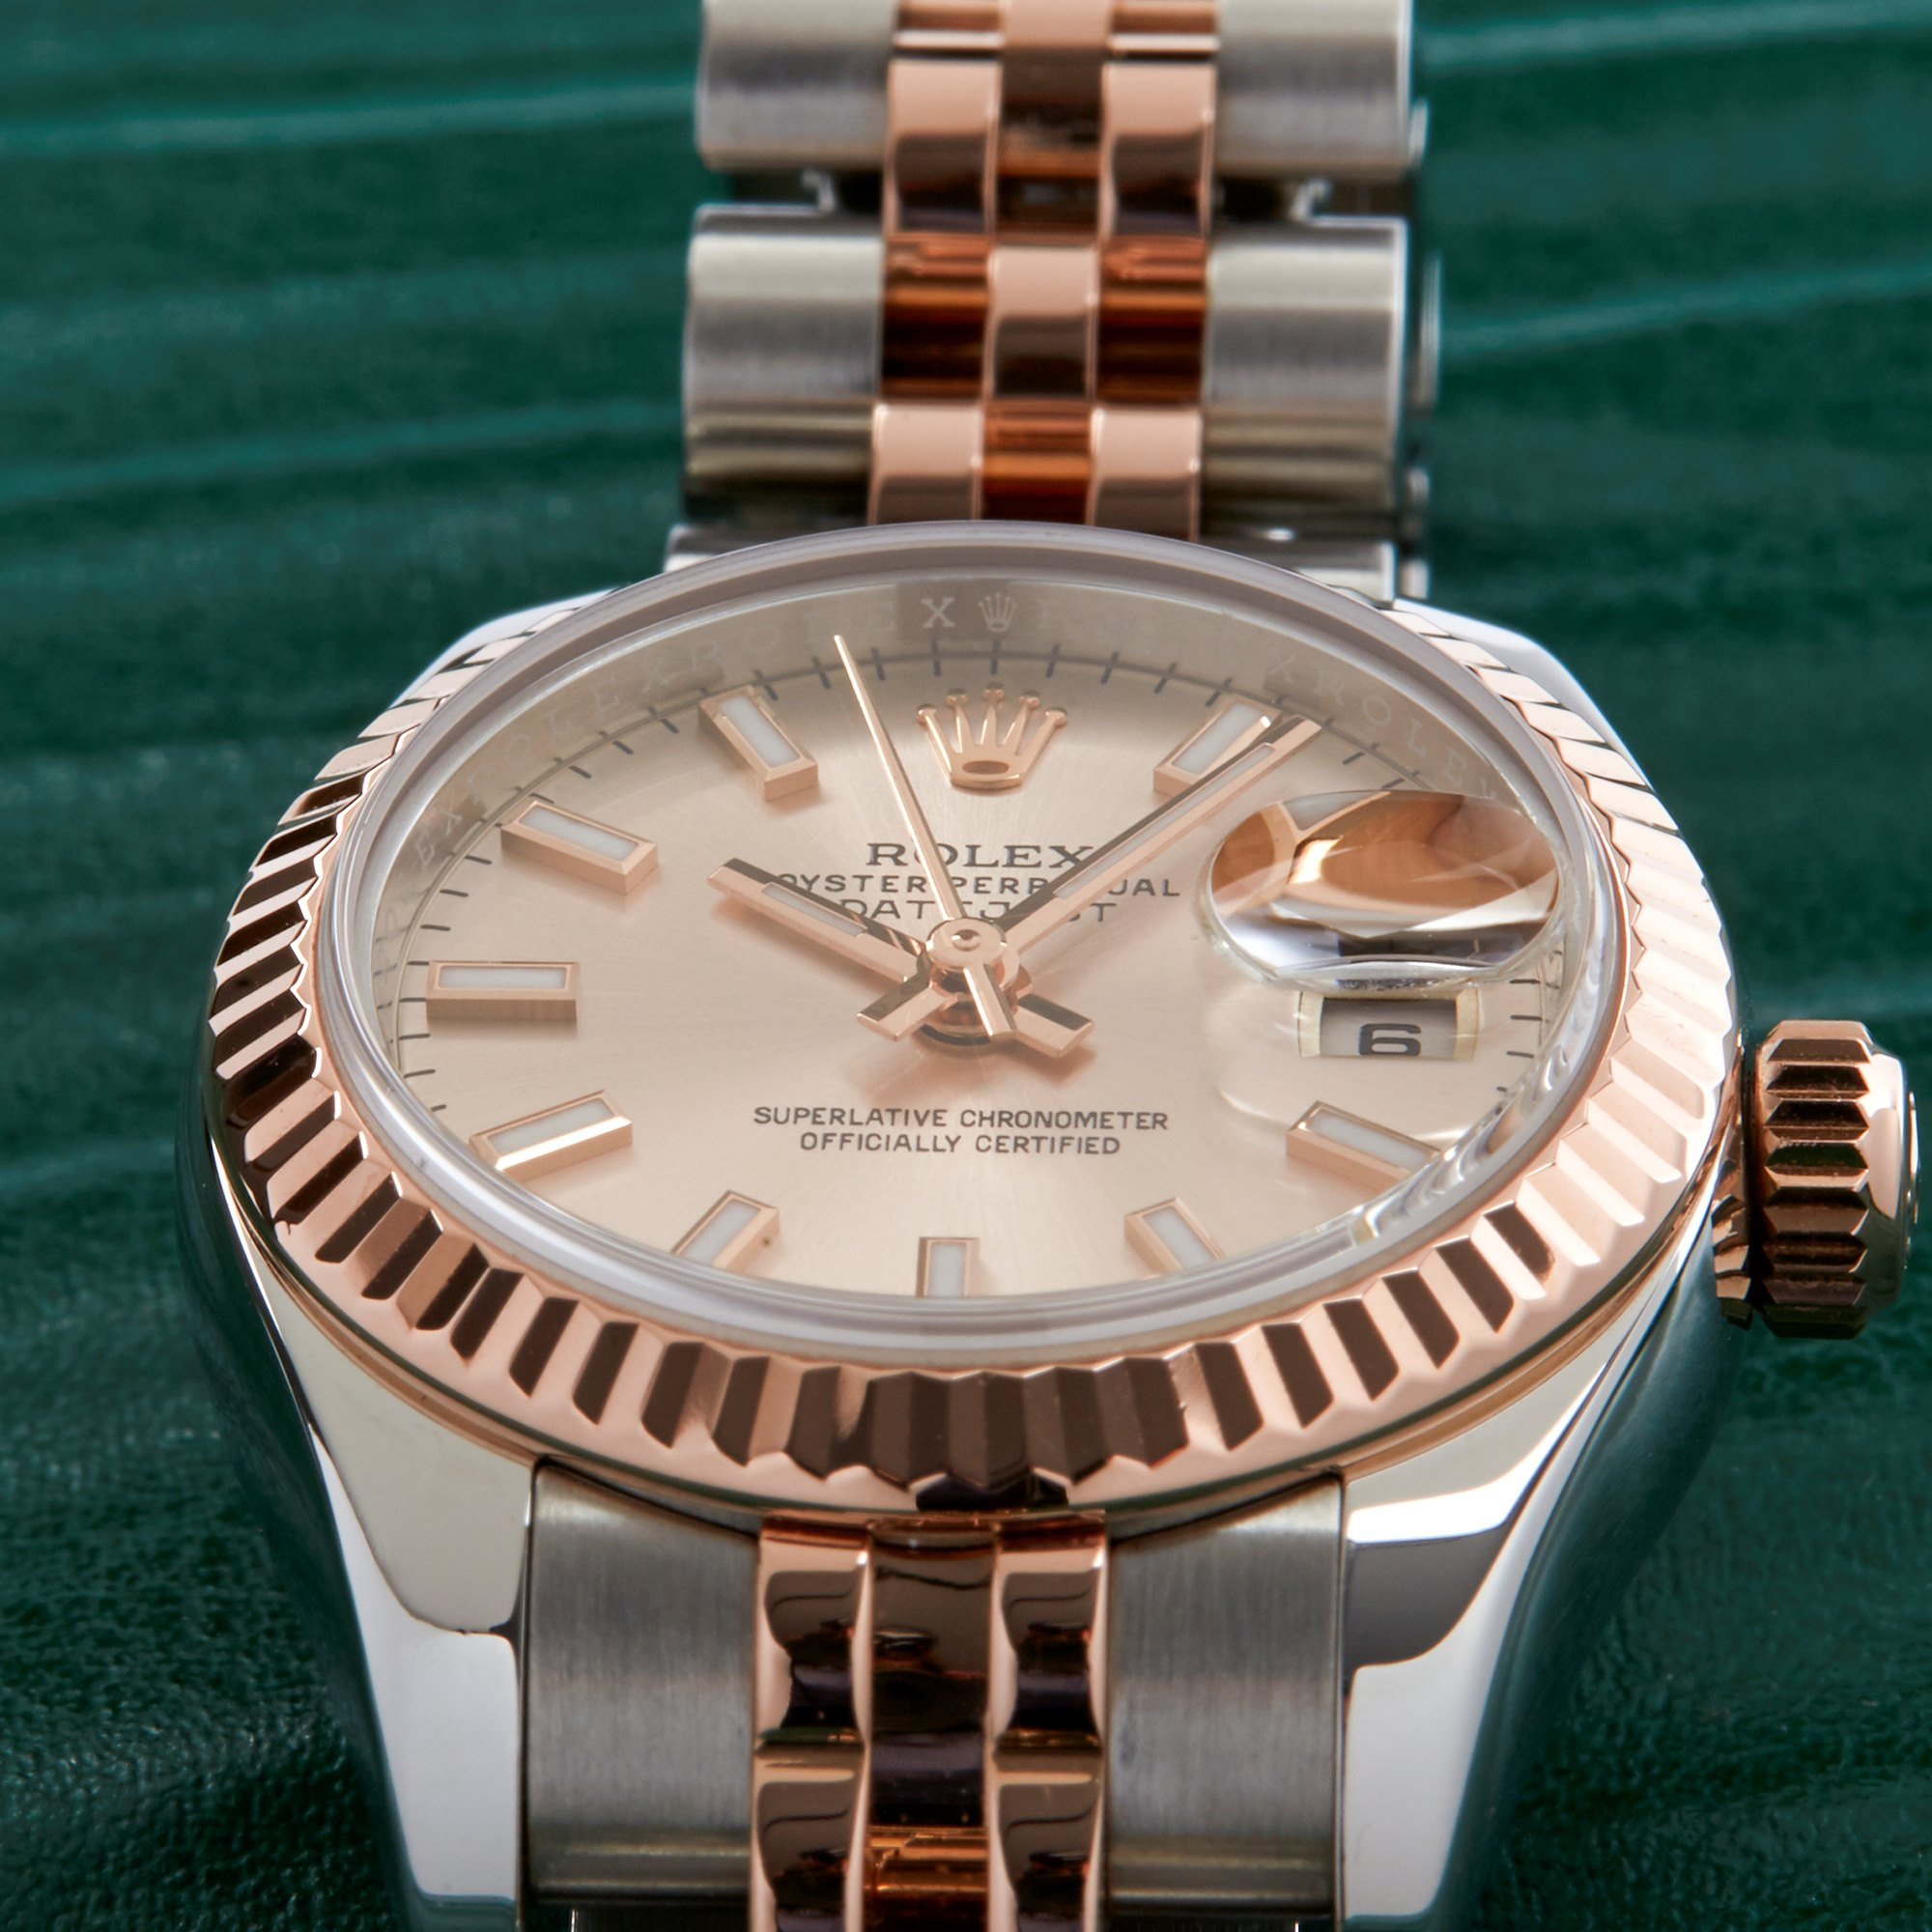 Rolex Datejust 26 179171 Ladies Rose Gold & Stainless Steel Watch - Image 10 of 10